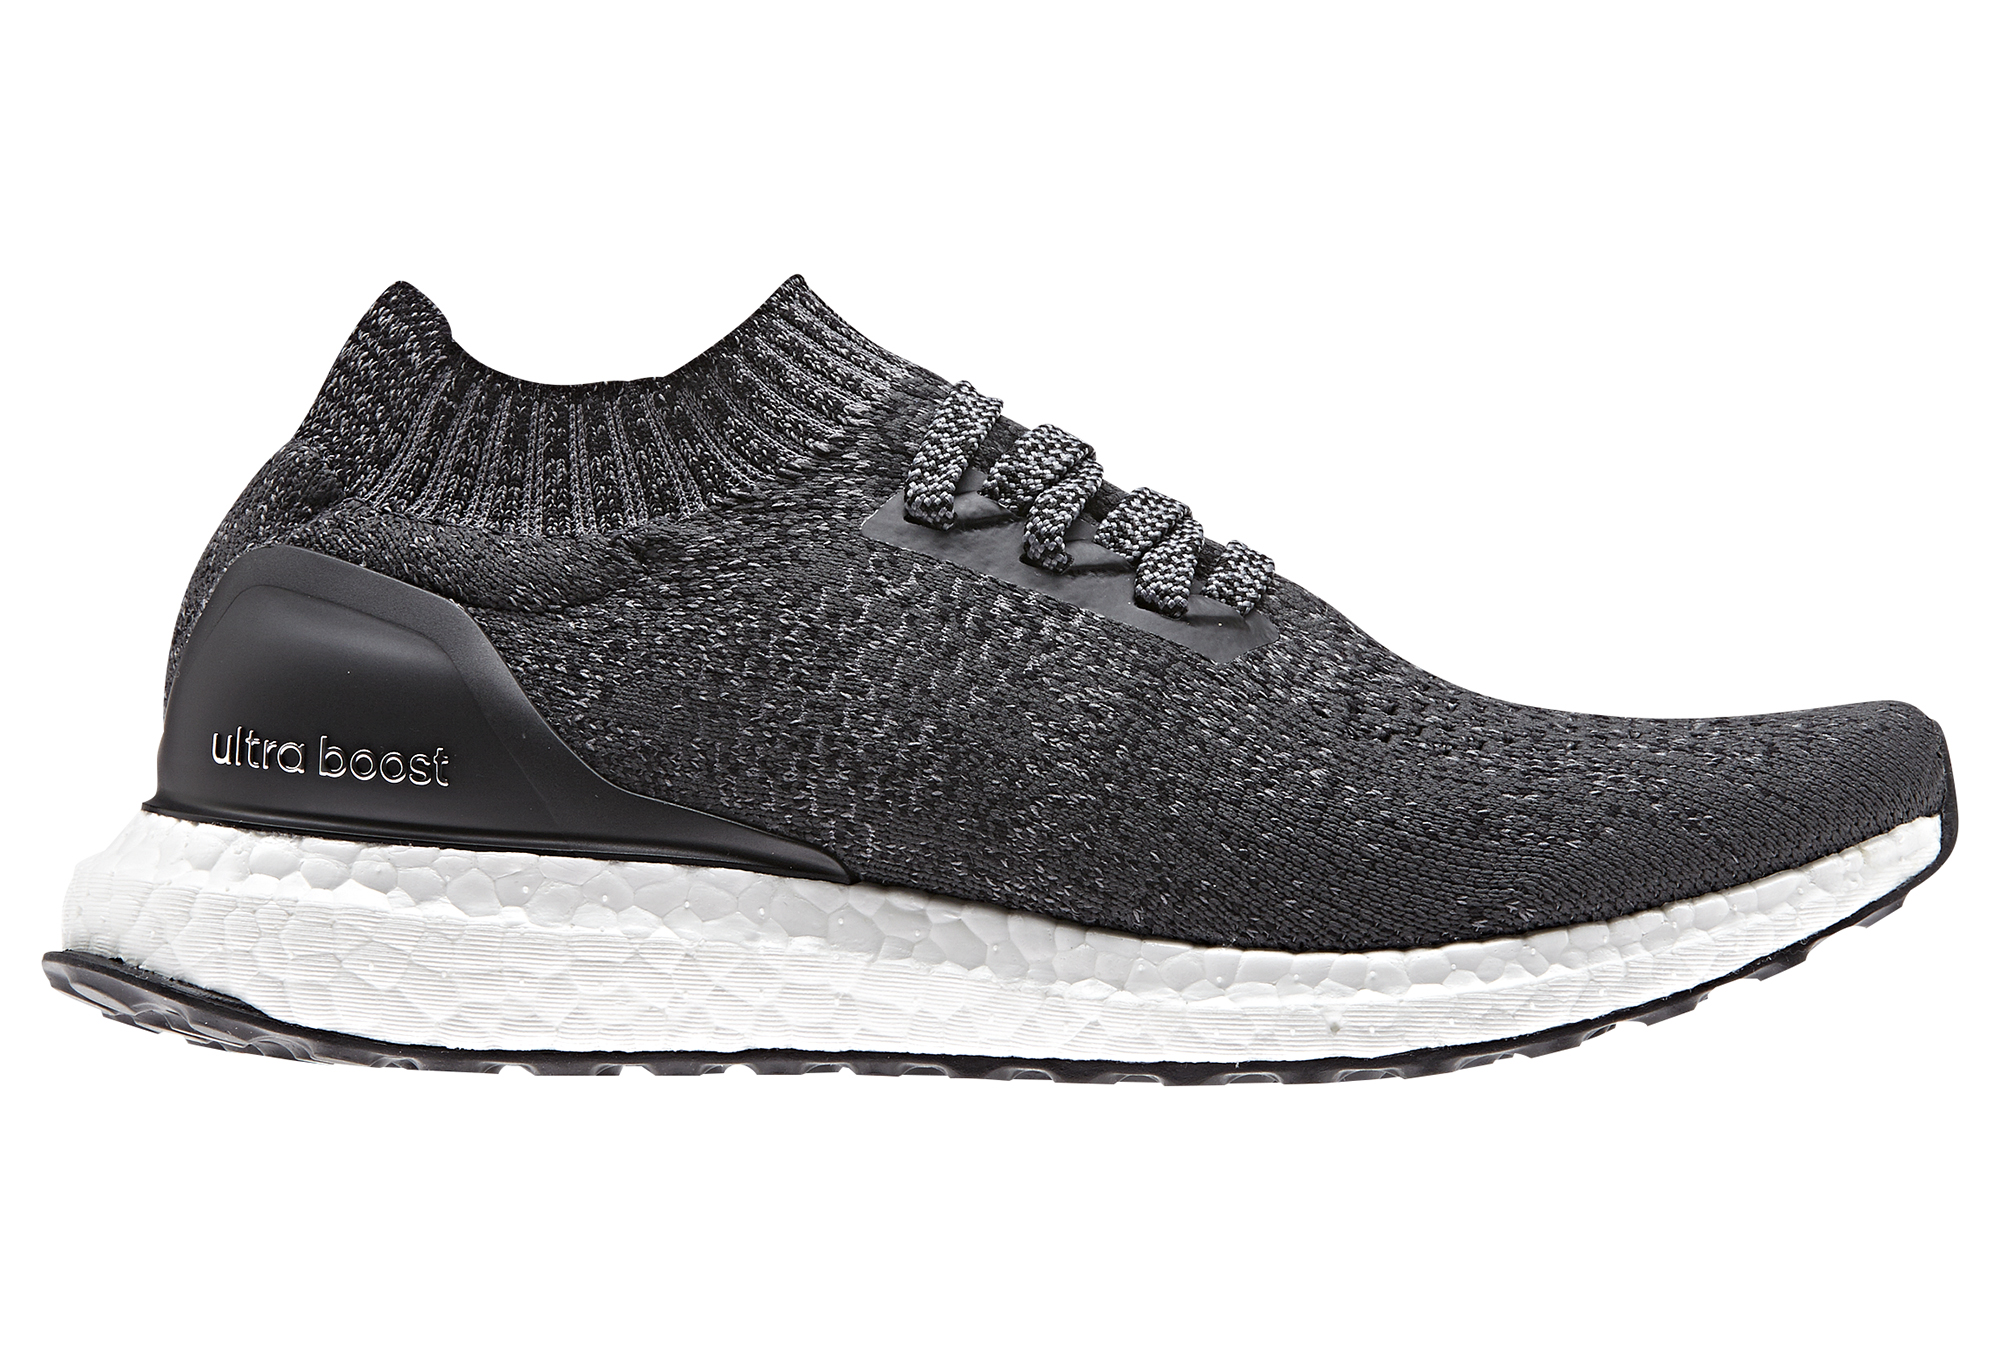 promo code for adidas uncaged ultra boost tutti nero 456f7 5a37f